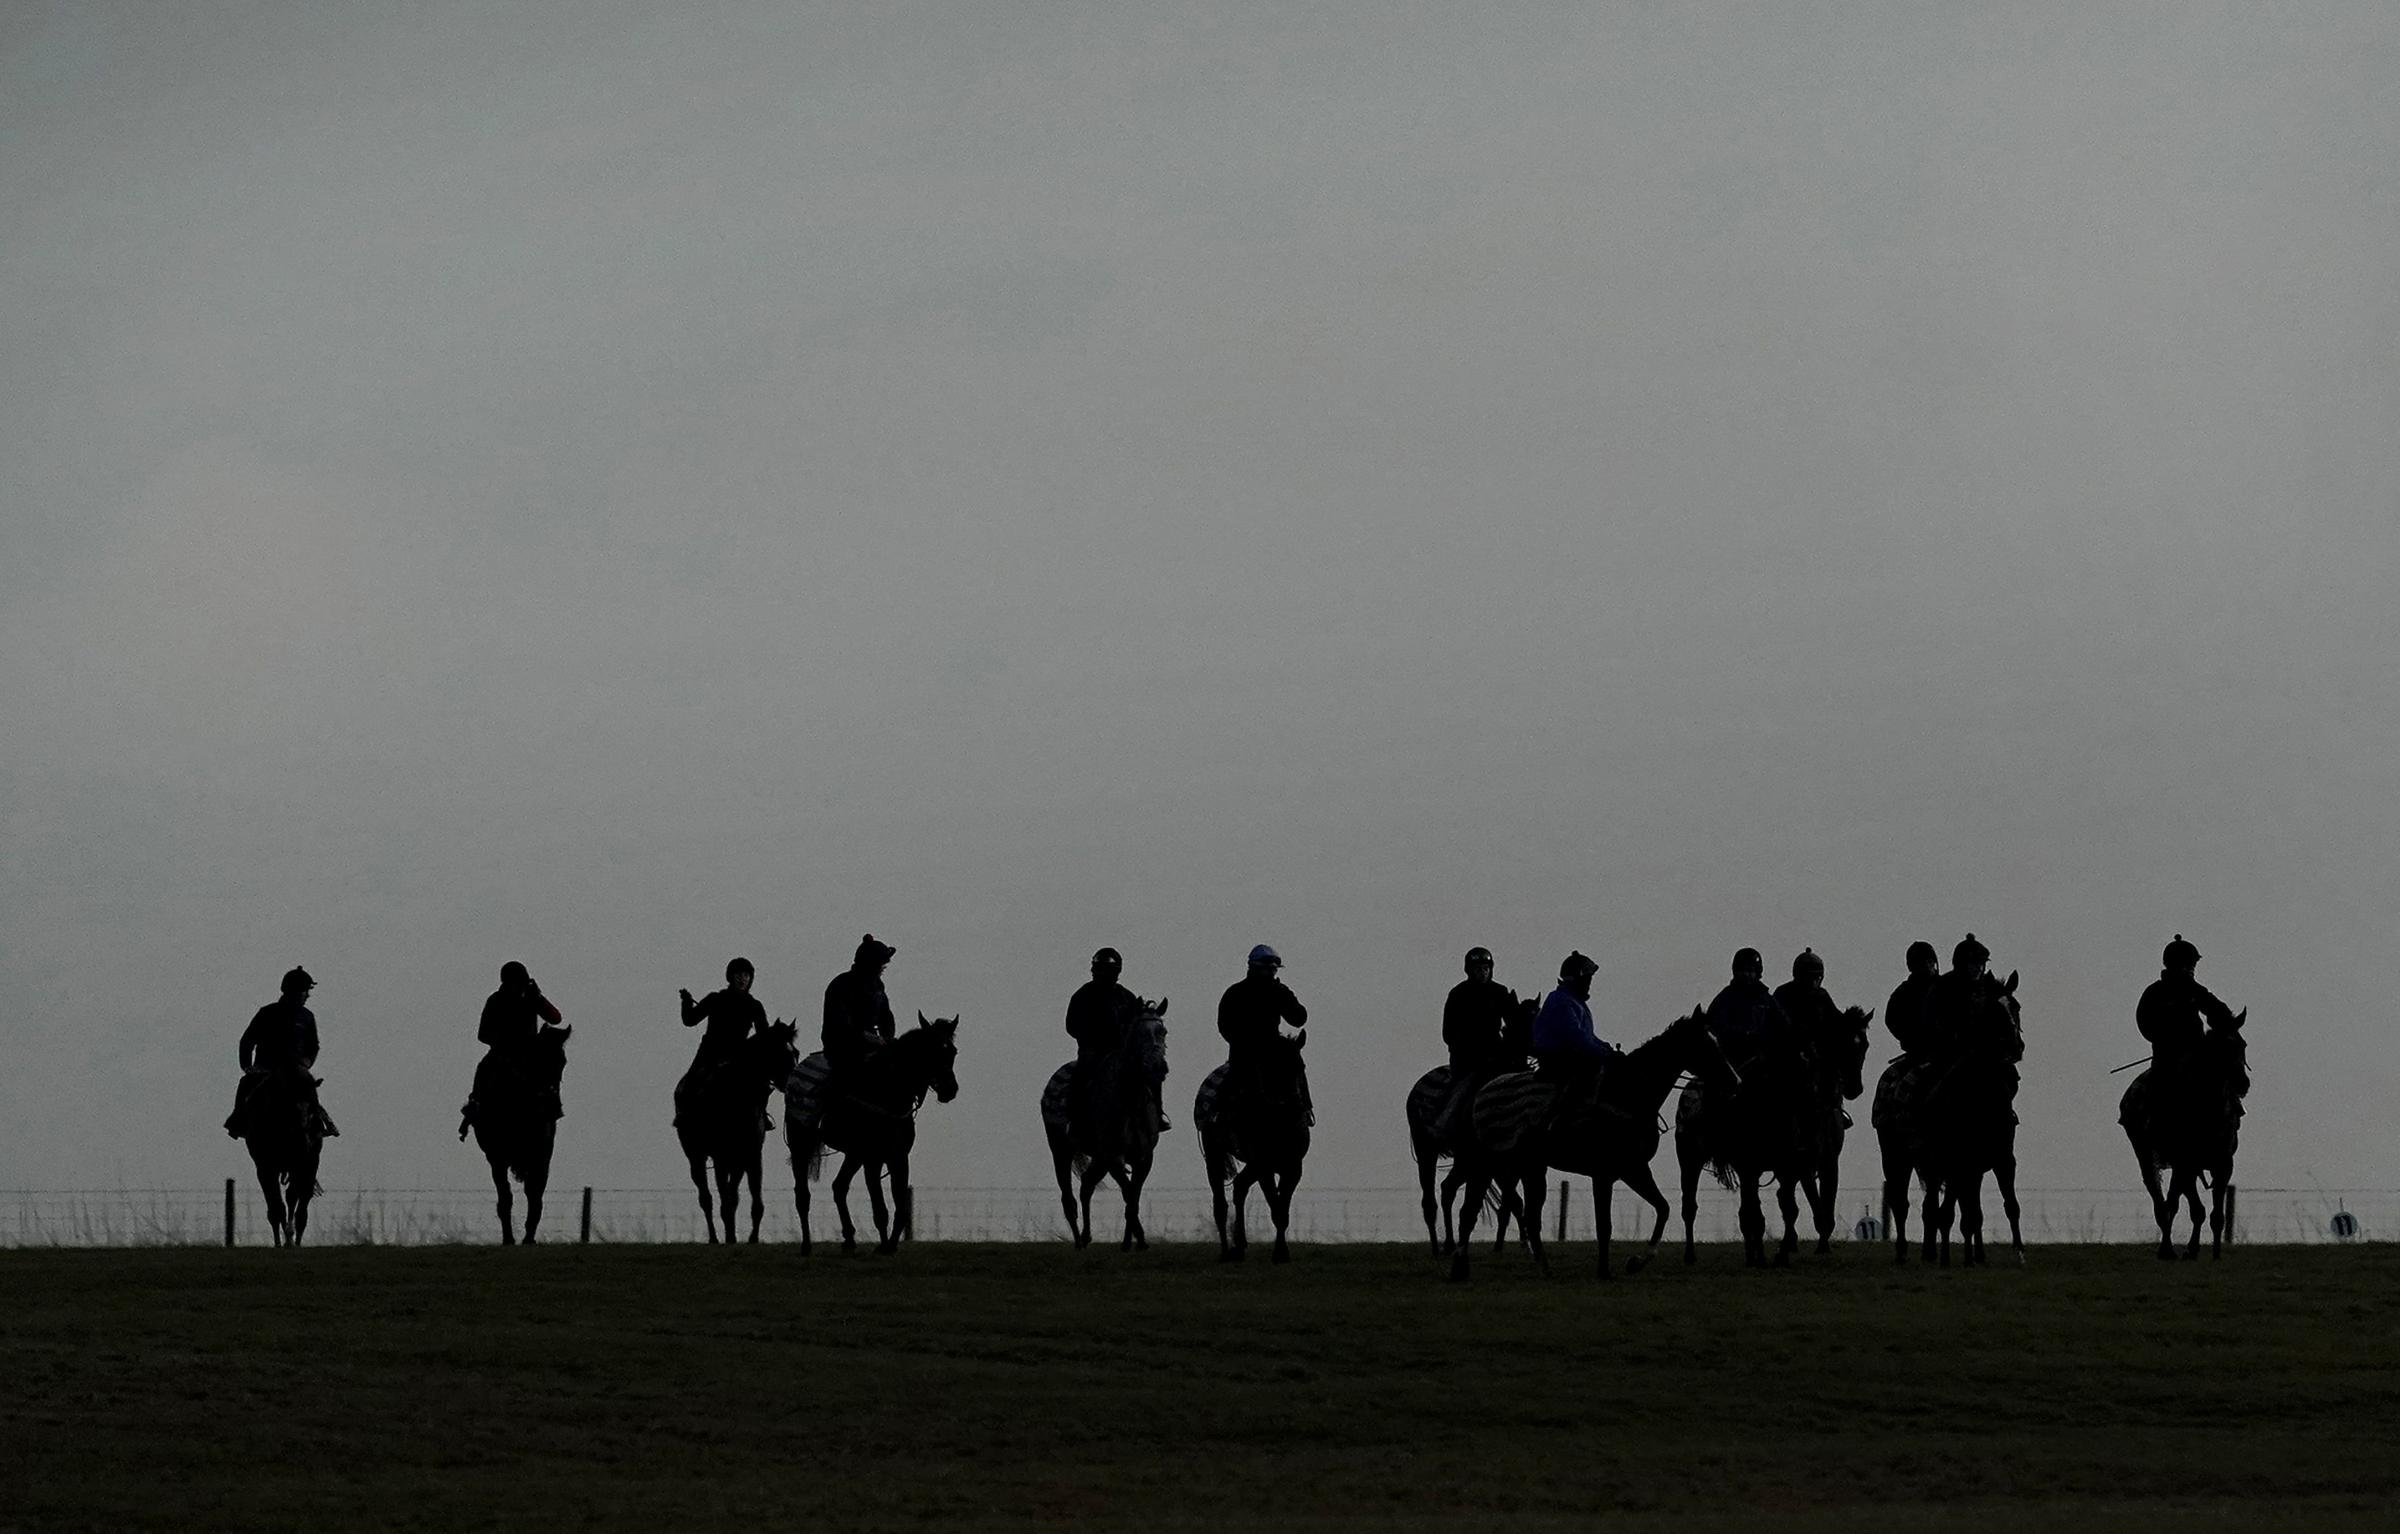 At some point today the British Horseracing Authority will decide if racing can resume later this week